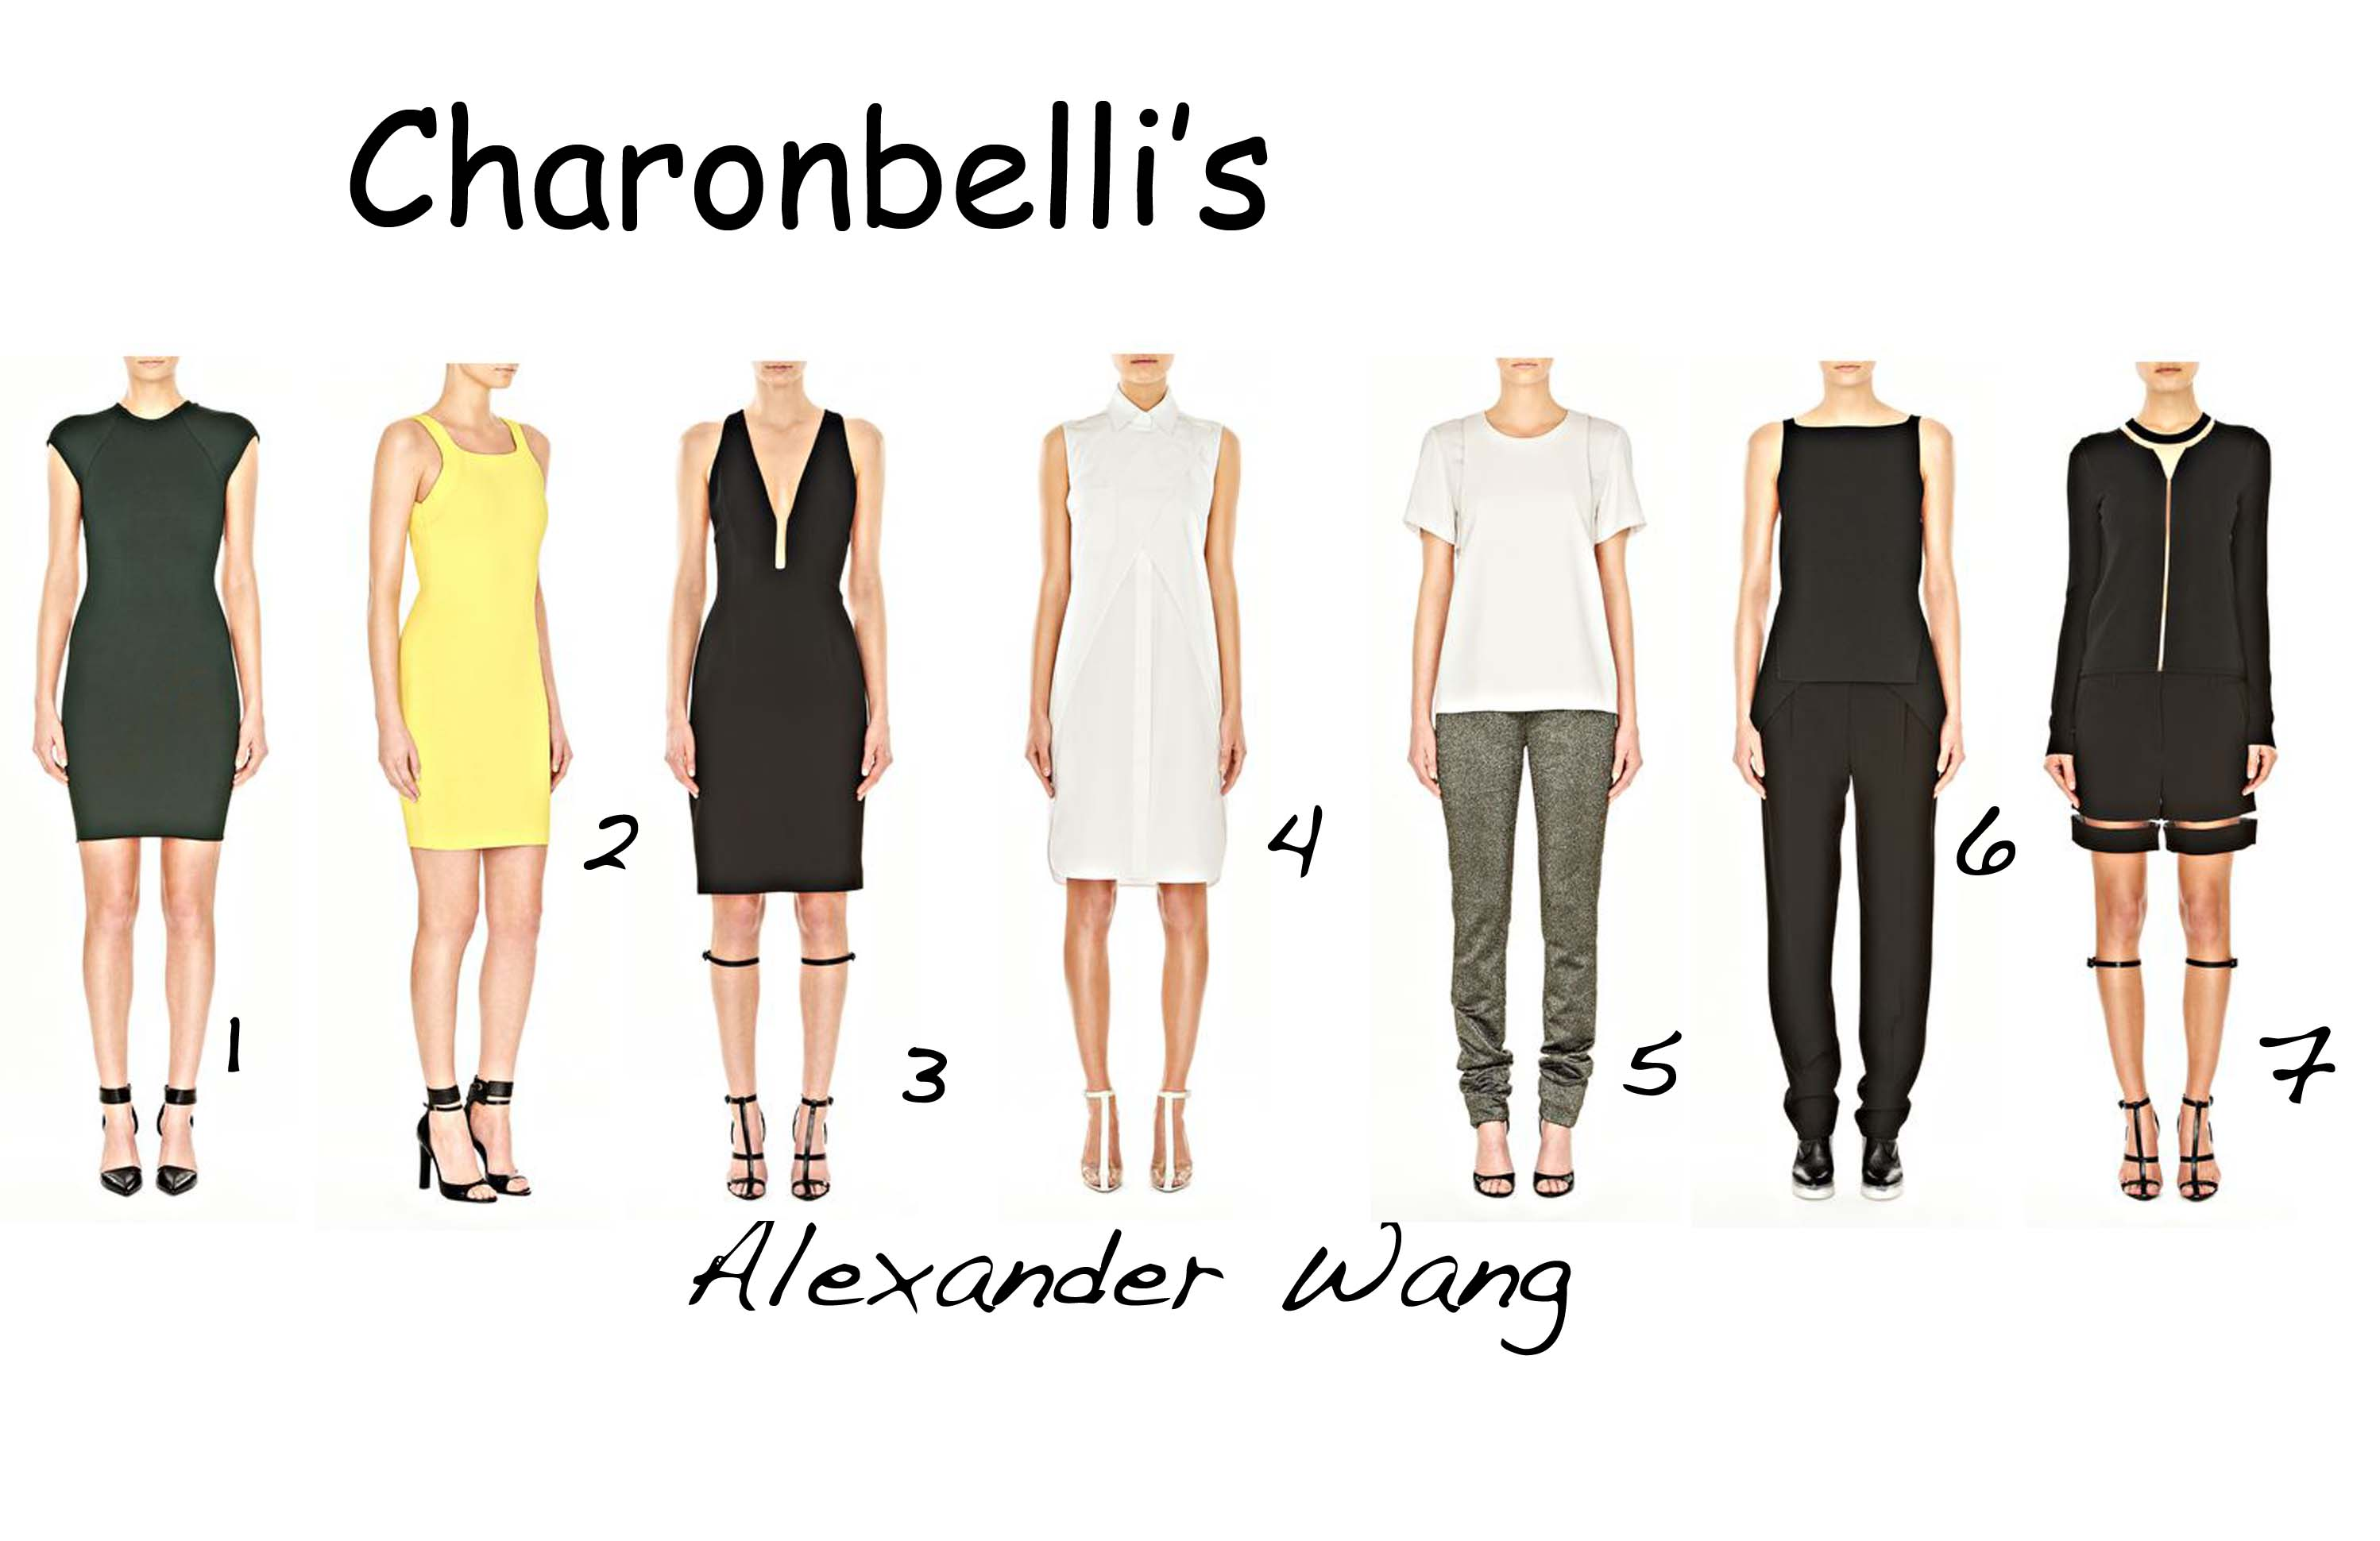 Alexander Wang - Charonbelli's blog mode